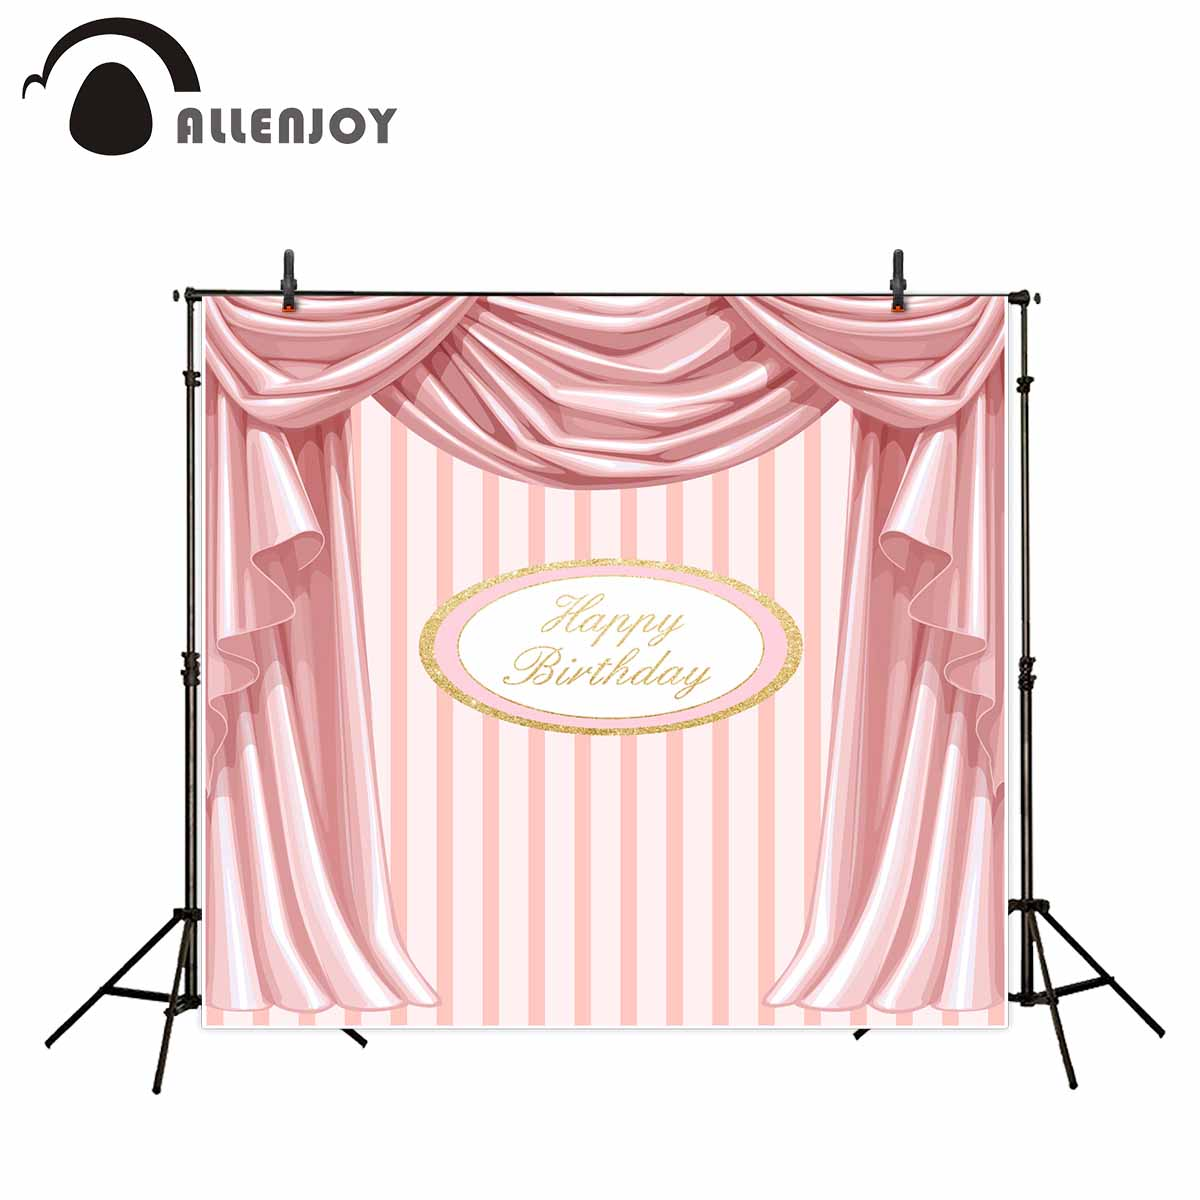 Allenjoy photography background pink princess sweet Birthday party backdrop professional photography studio camera fotografica allenjoy photography background pink